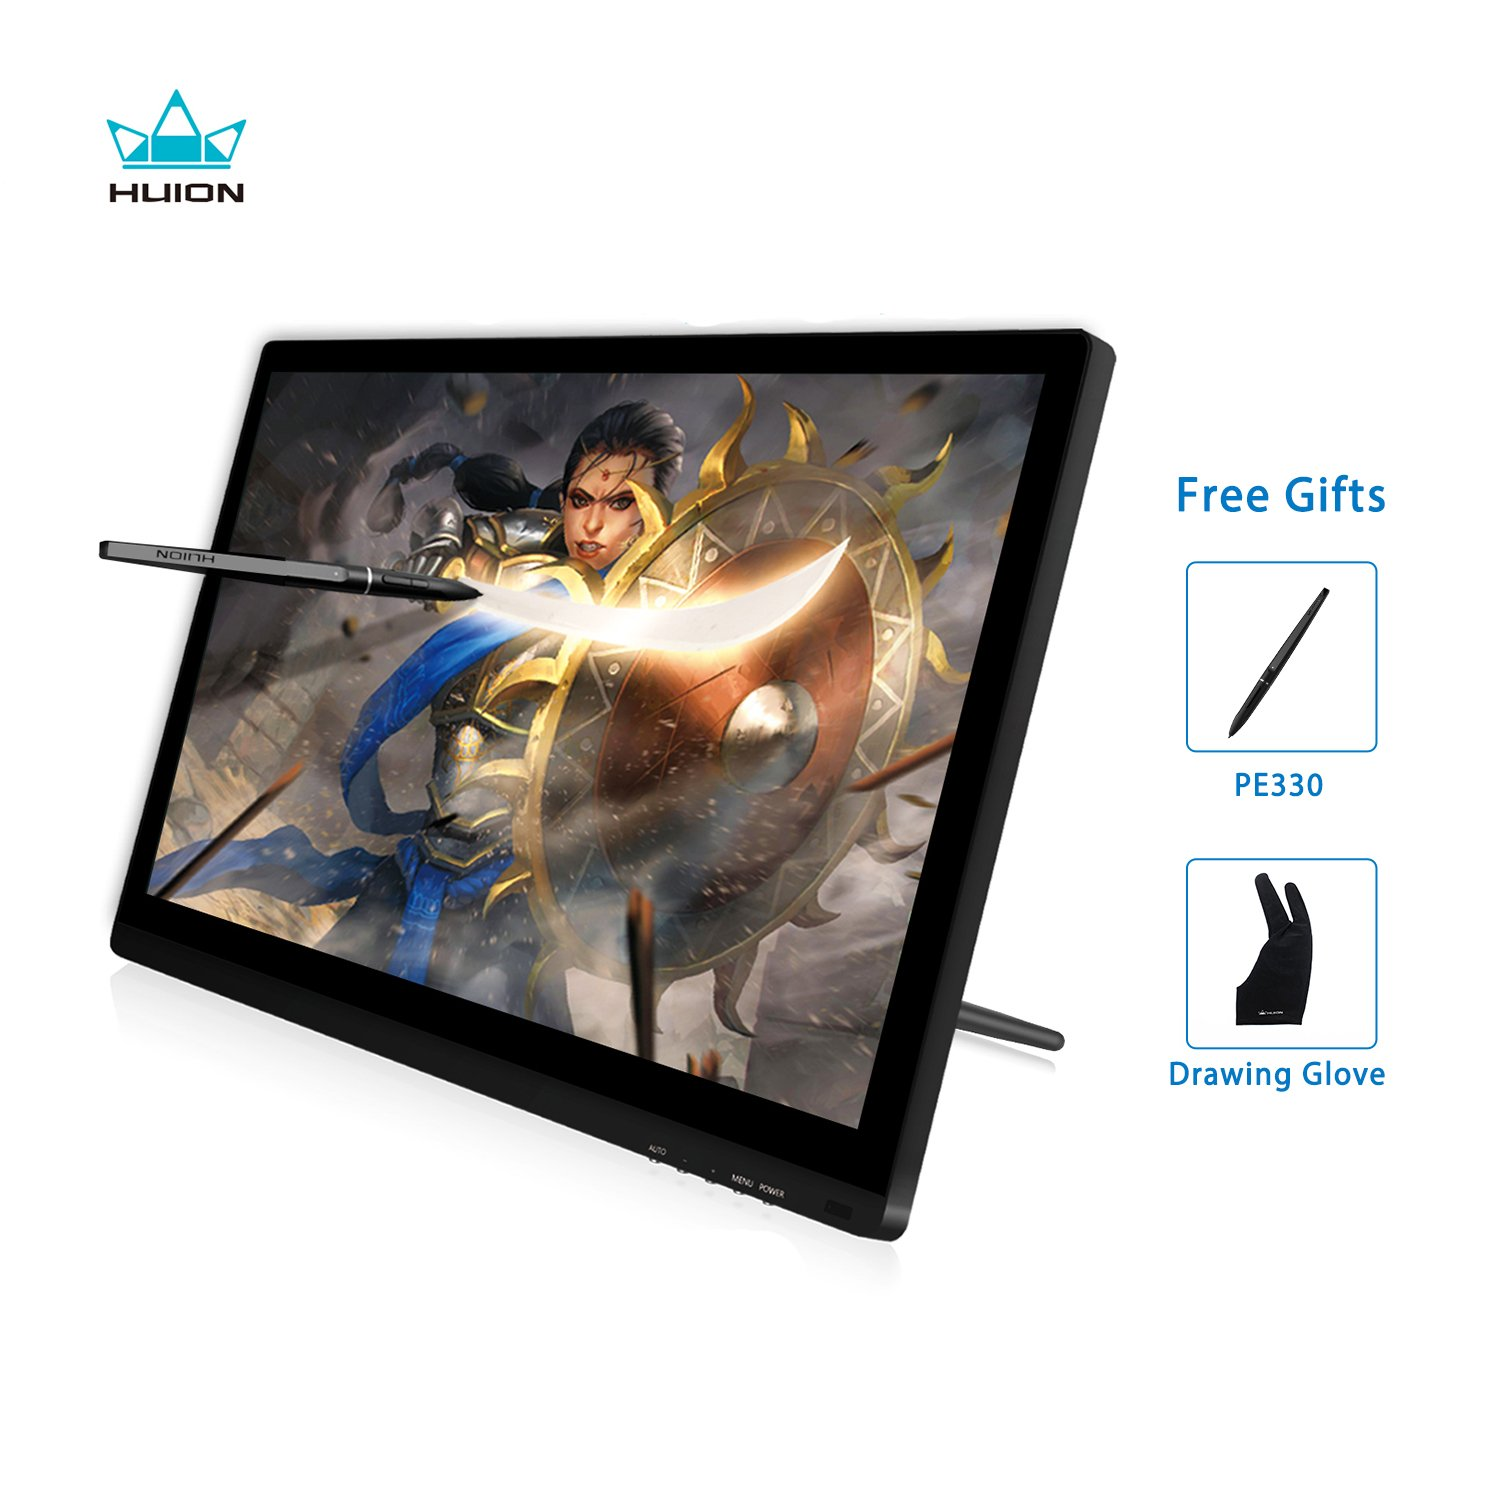 HUION Actualizado Kamvas GT-191 V2 8192 Nivel Libre de baterí a Stylus Lá piz de Display Dibujo Monitor con Panel IPS 19.5 Pulgadas 1920x1080 266 PPS (GT-191 V2) Shenzhen Huion Animation Technology Ltd.